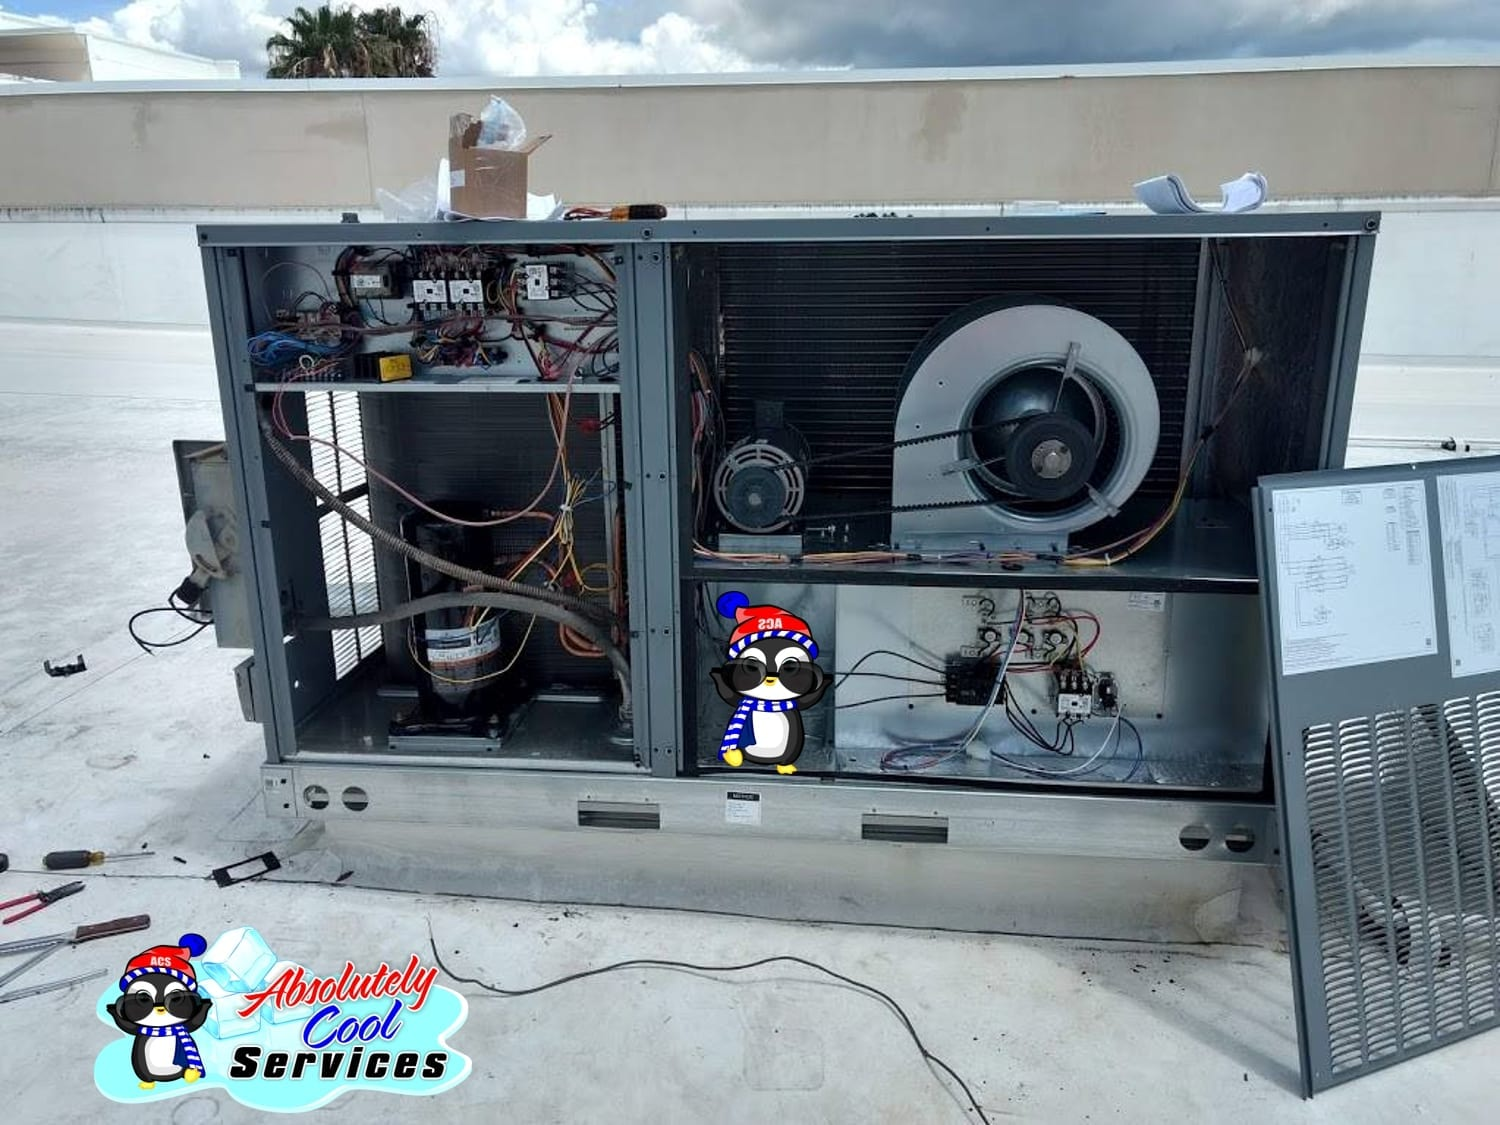 Roof Air Conditioning | Air Conditioning Diagnosis Service near Jupitor